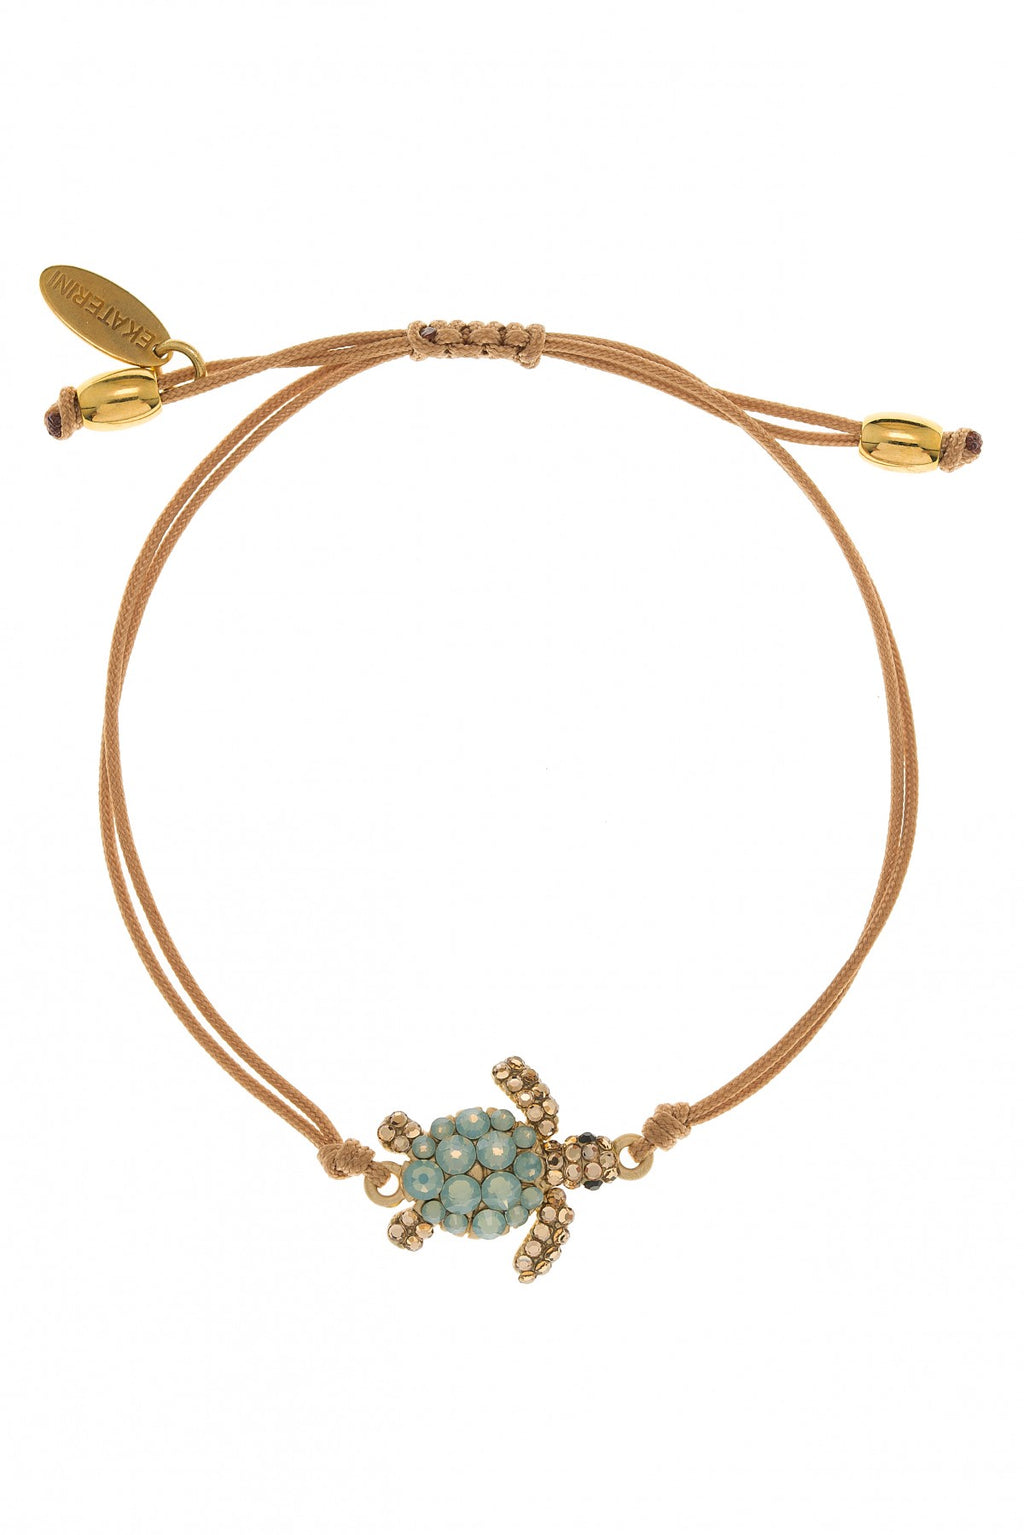 Caretta Turtle bracelet in pacific color